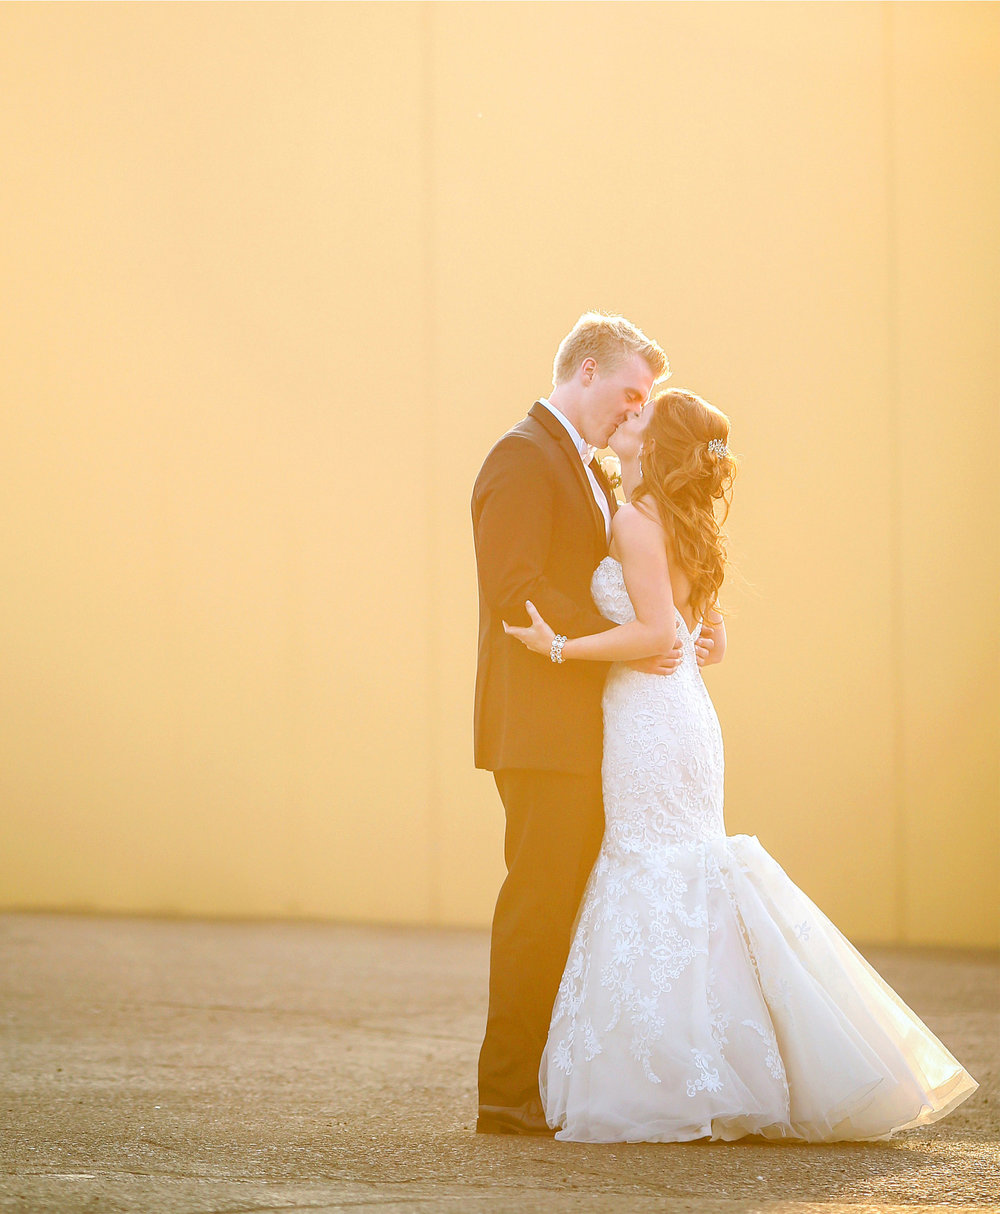 13-Minneapolis-Minnesota-Wedding-Photography-by-Vick-Photography-Golden-Hour-Tianna-&-Matt.jpg